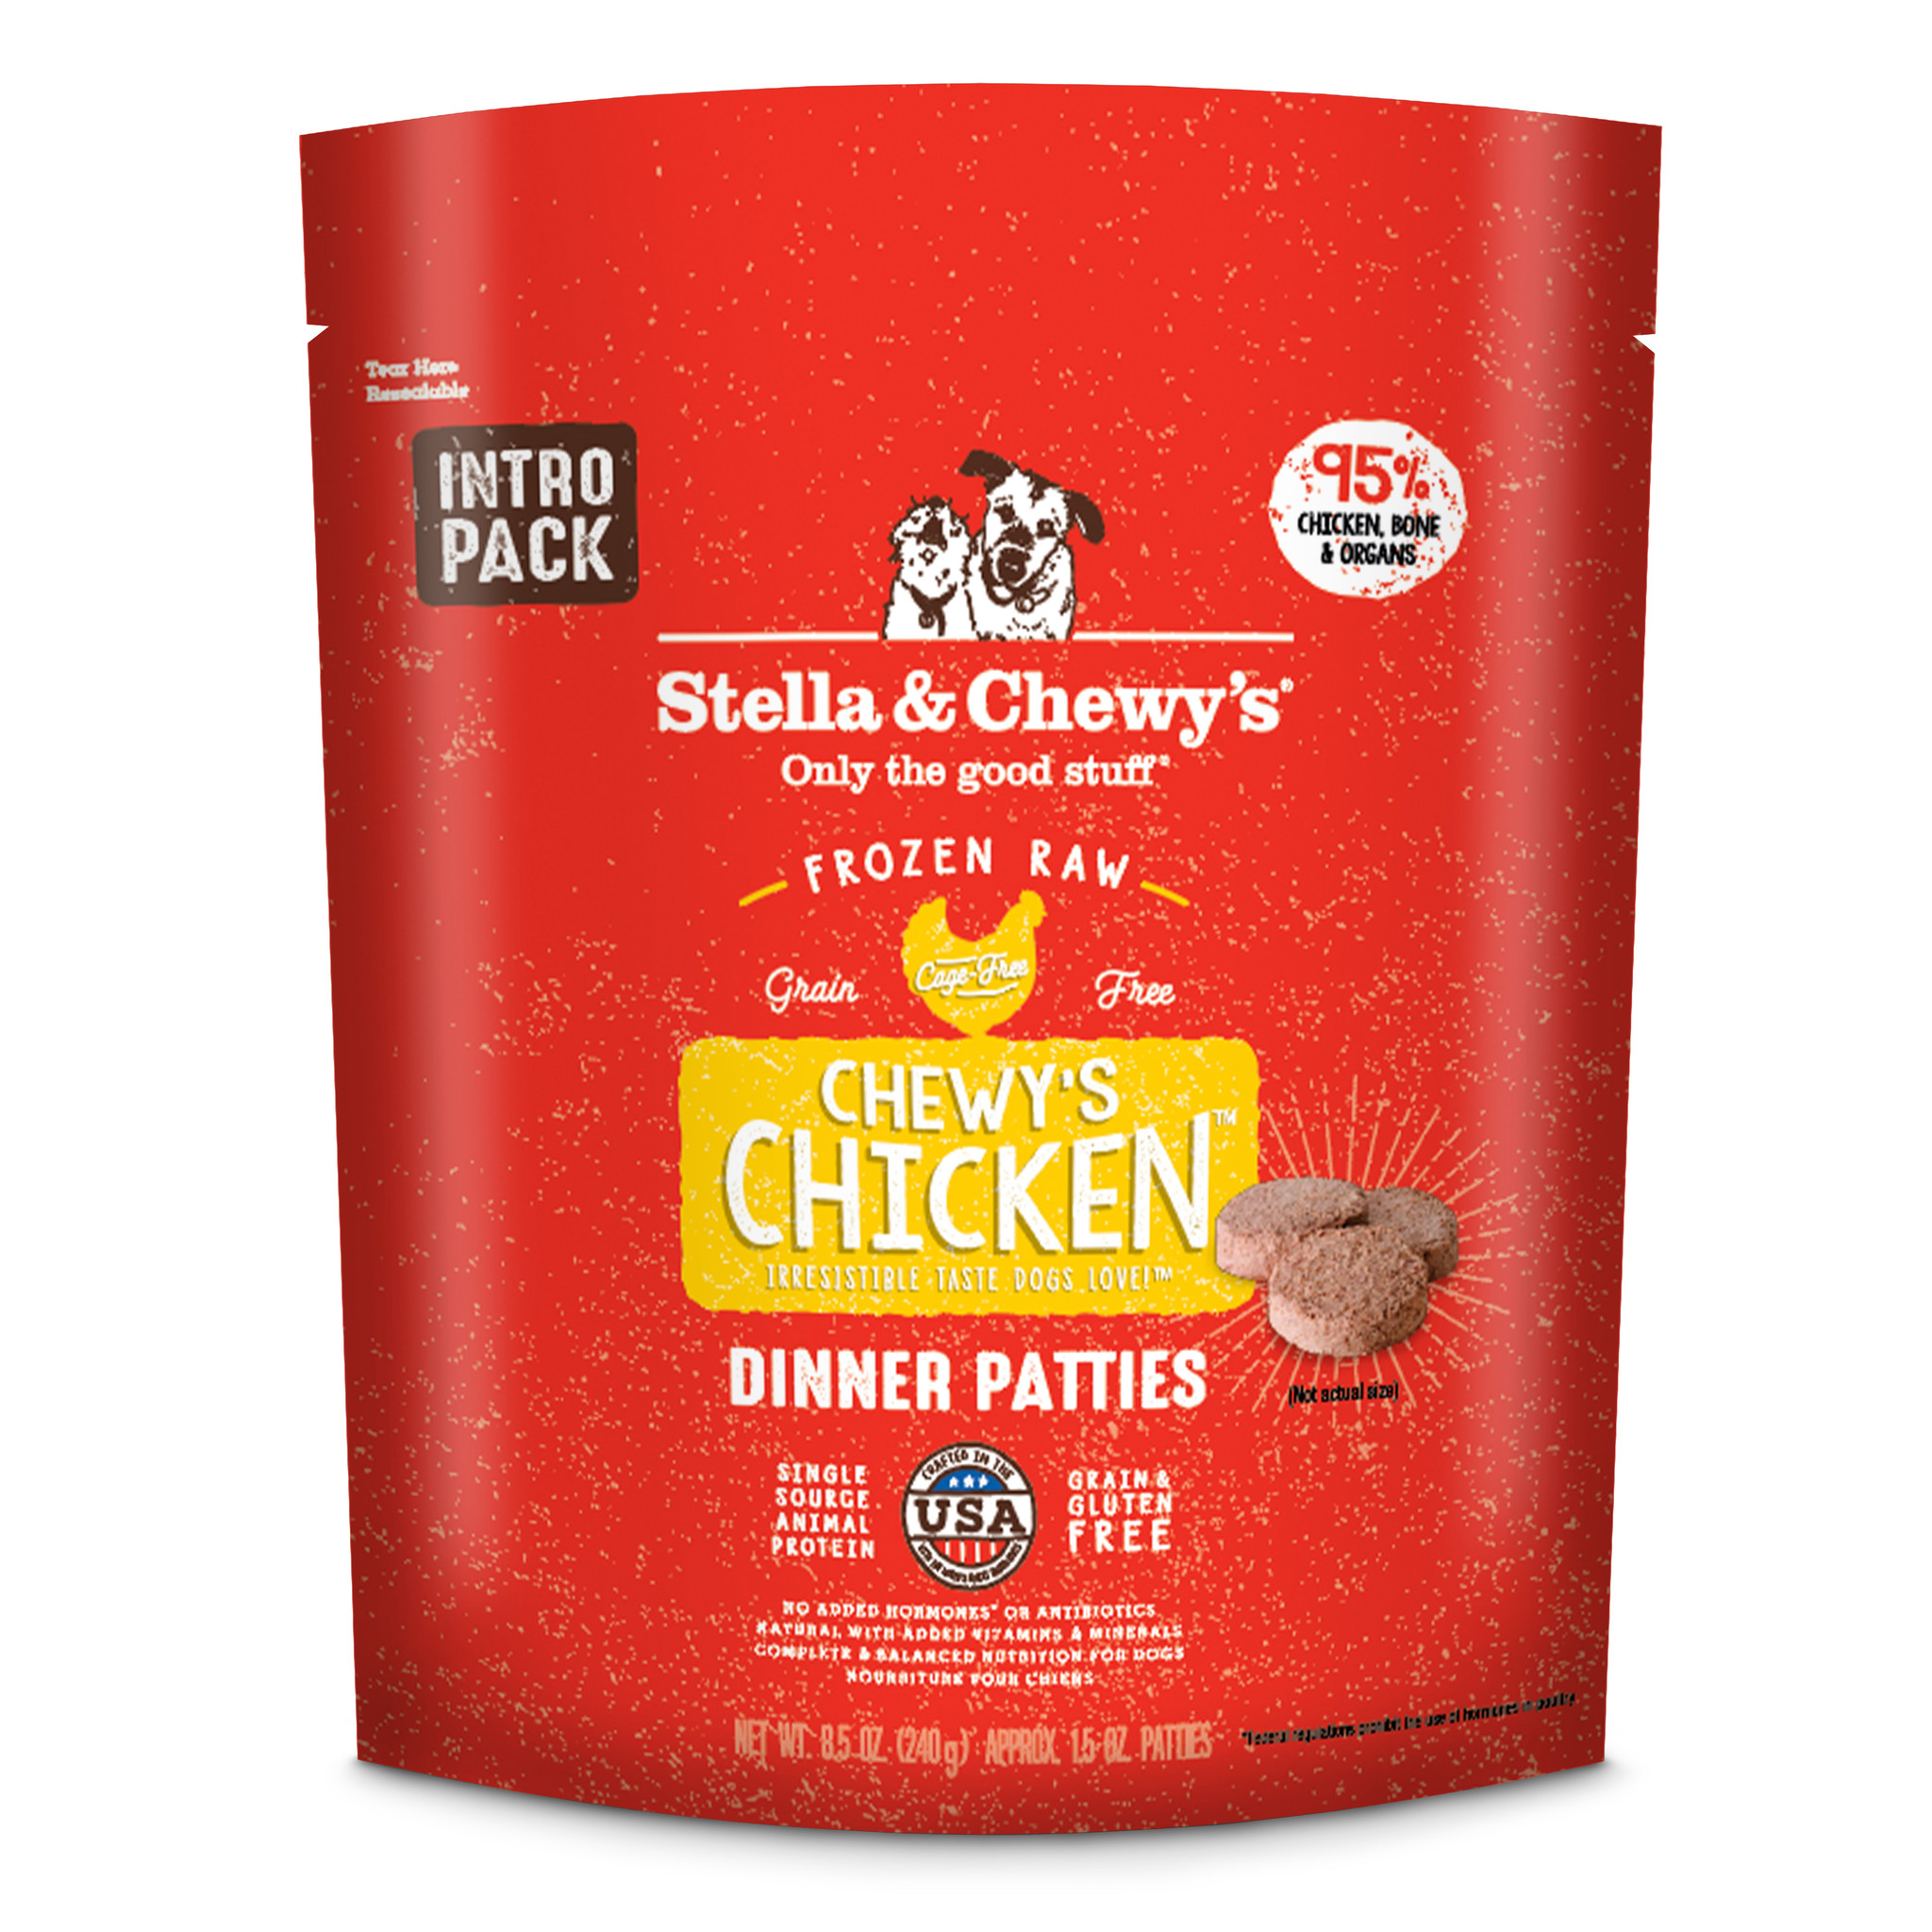 Stella & Chewys Stella & Chewys Chewy's Chicken Frozen Raw Dinner Patties